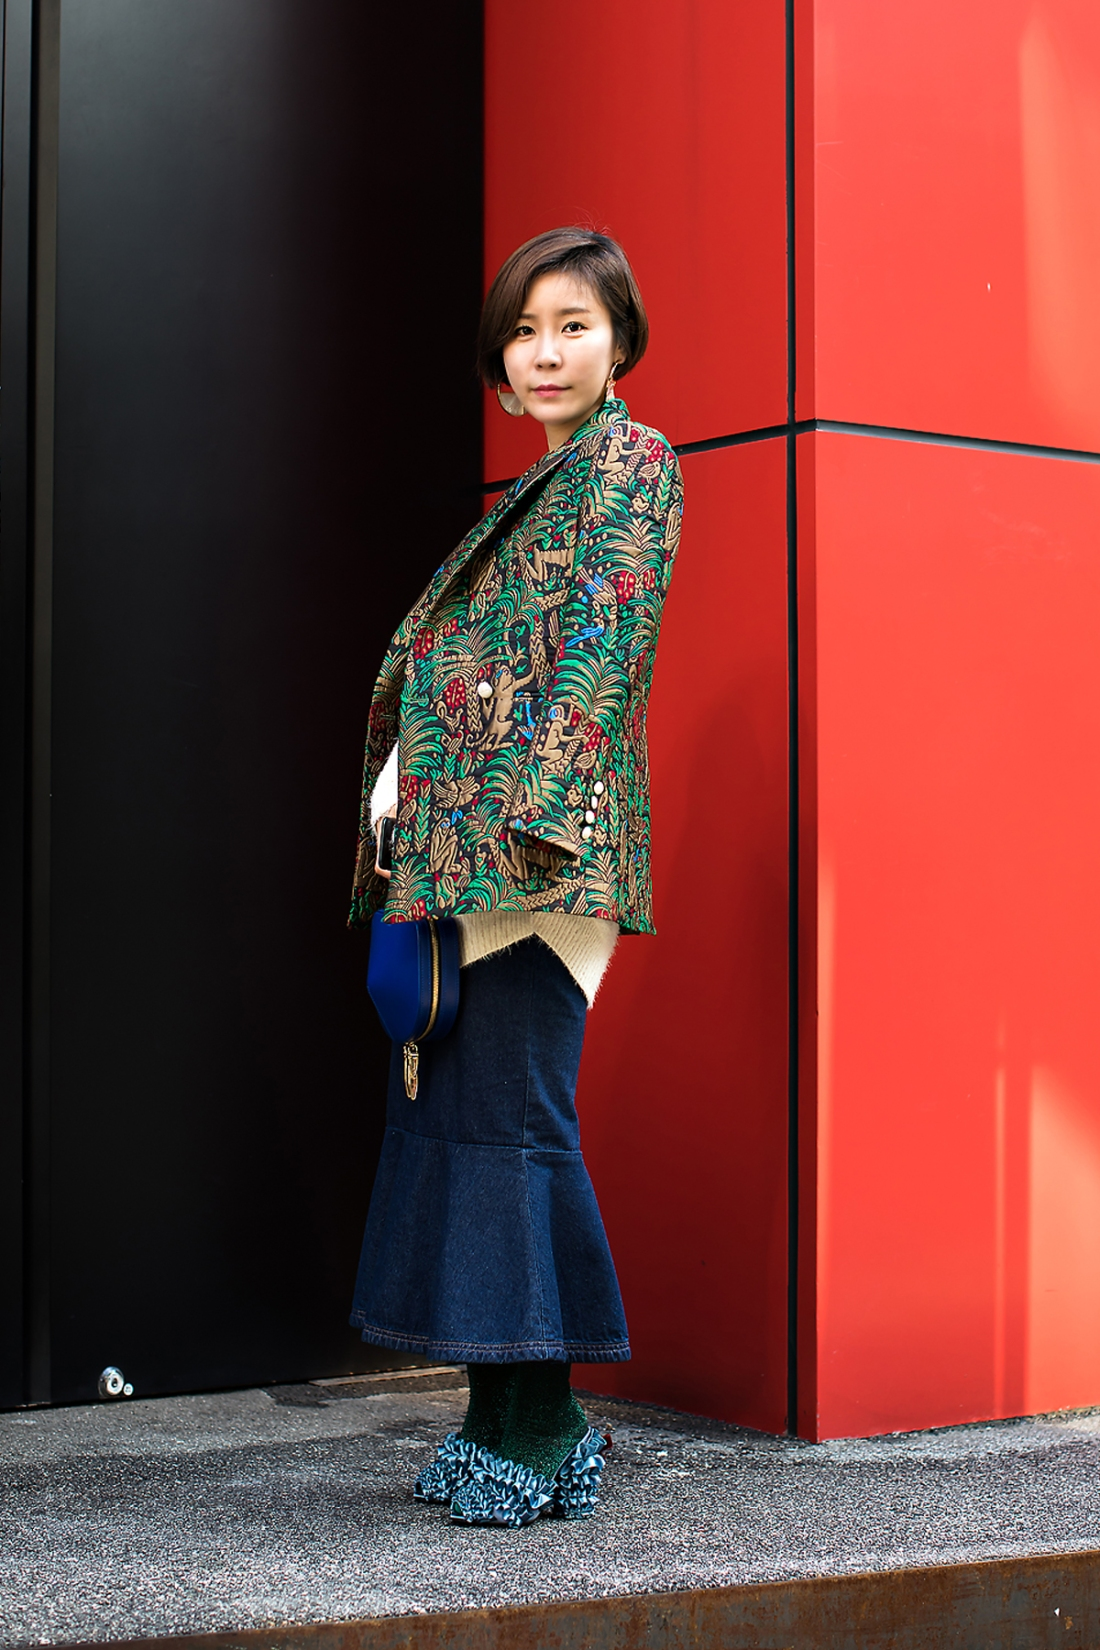 Lee Juhee, Street Fashion 2017 in SEOUL.jpg